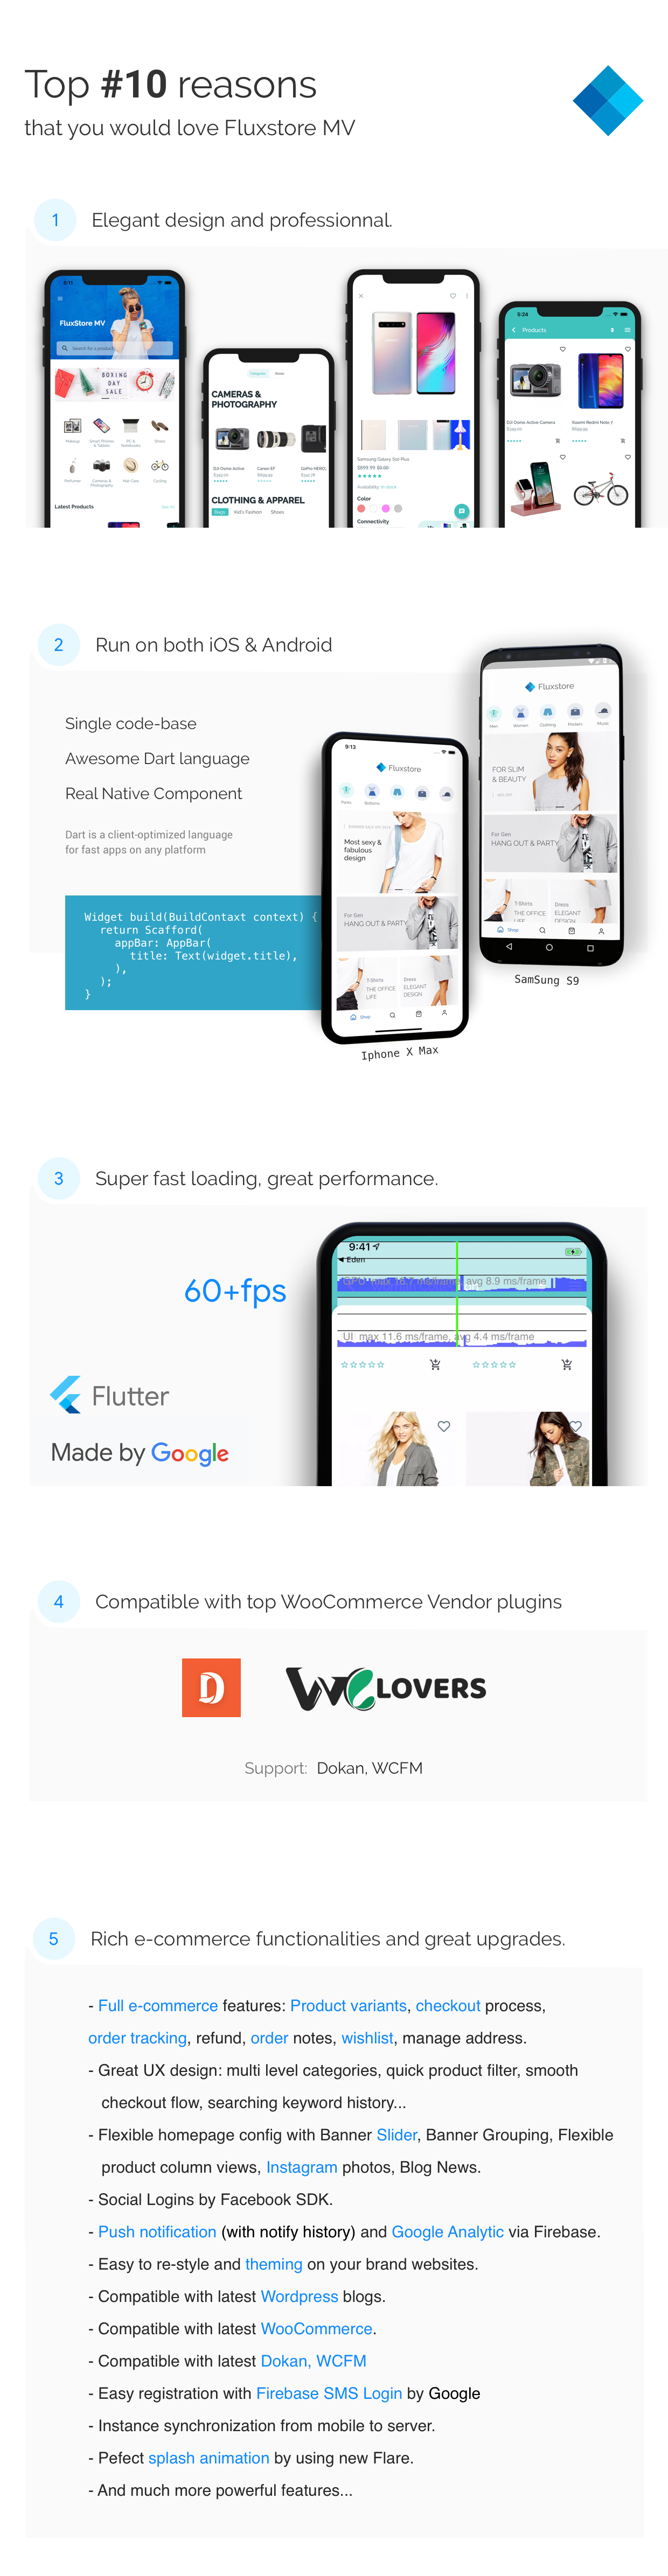 Fluxstore Multi Vendor - Flutter E-commerce Full App - 5